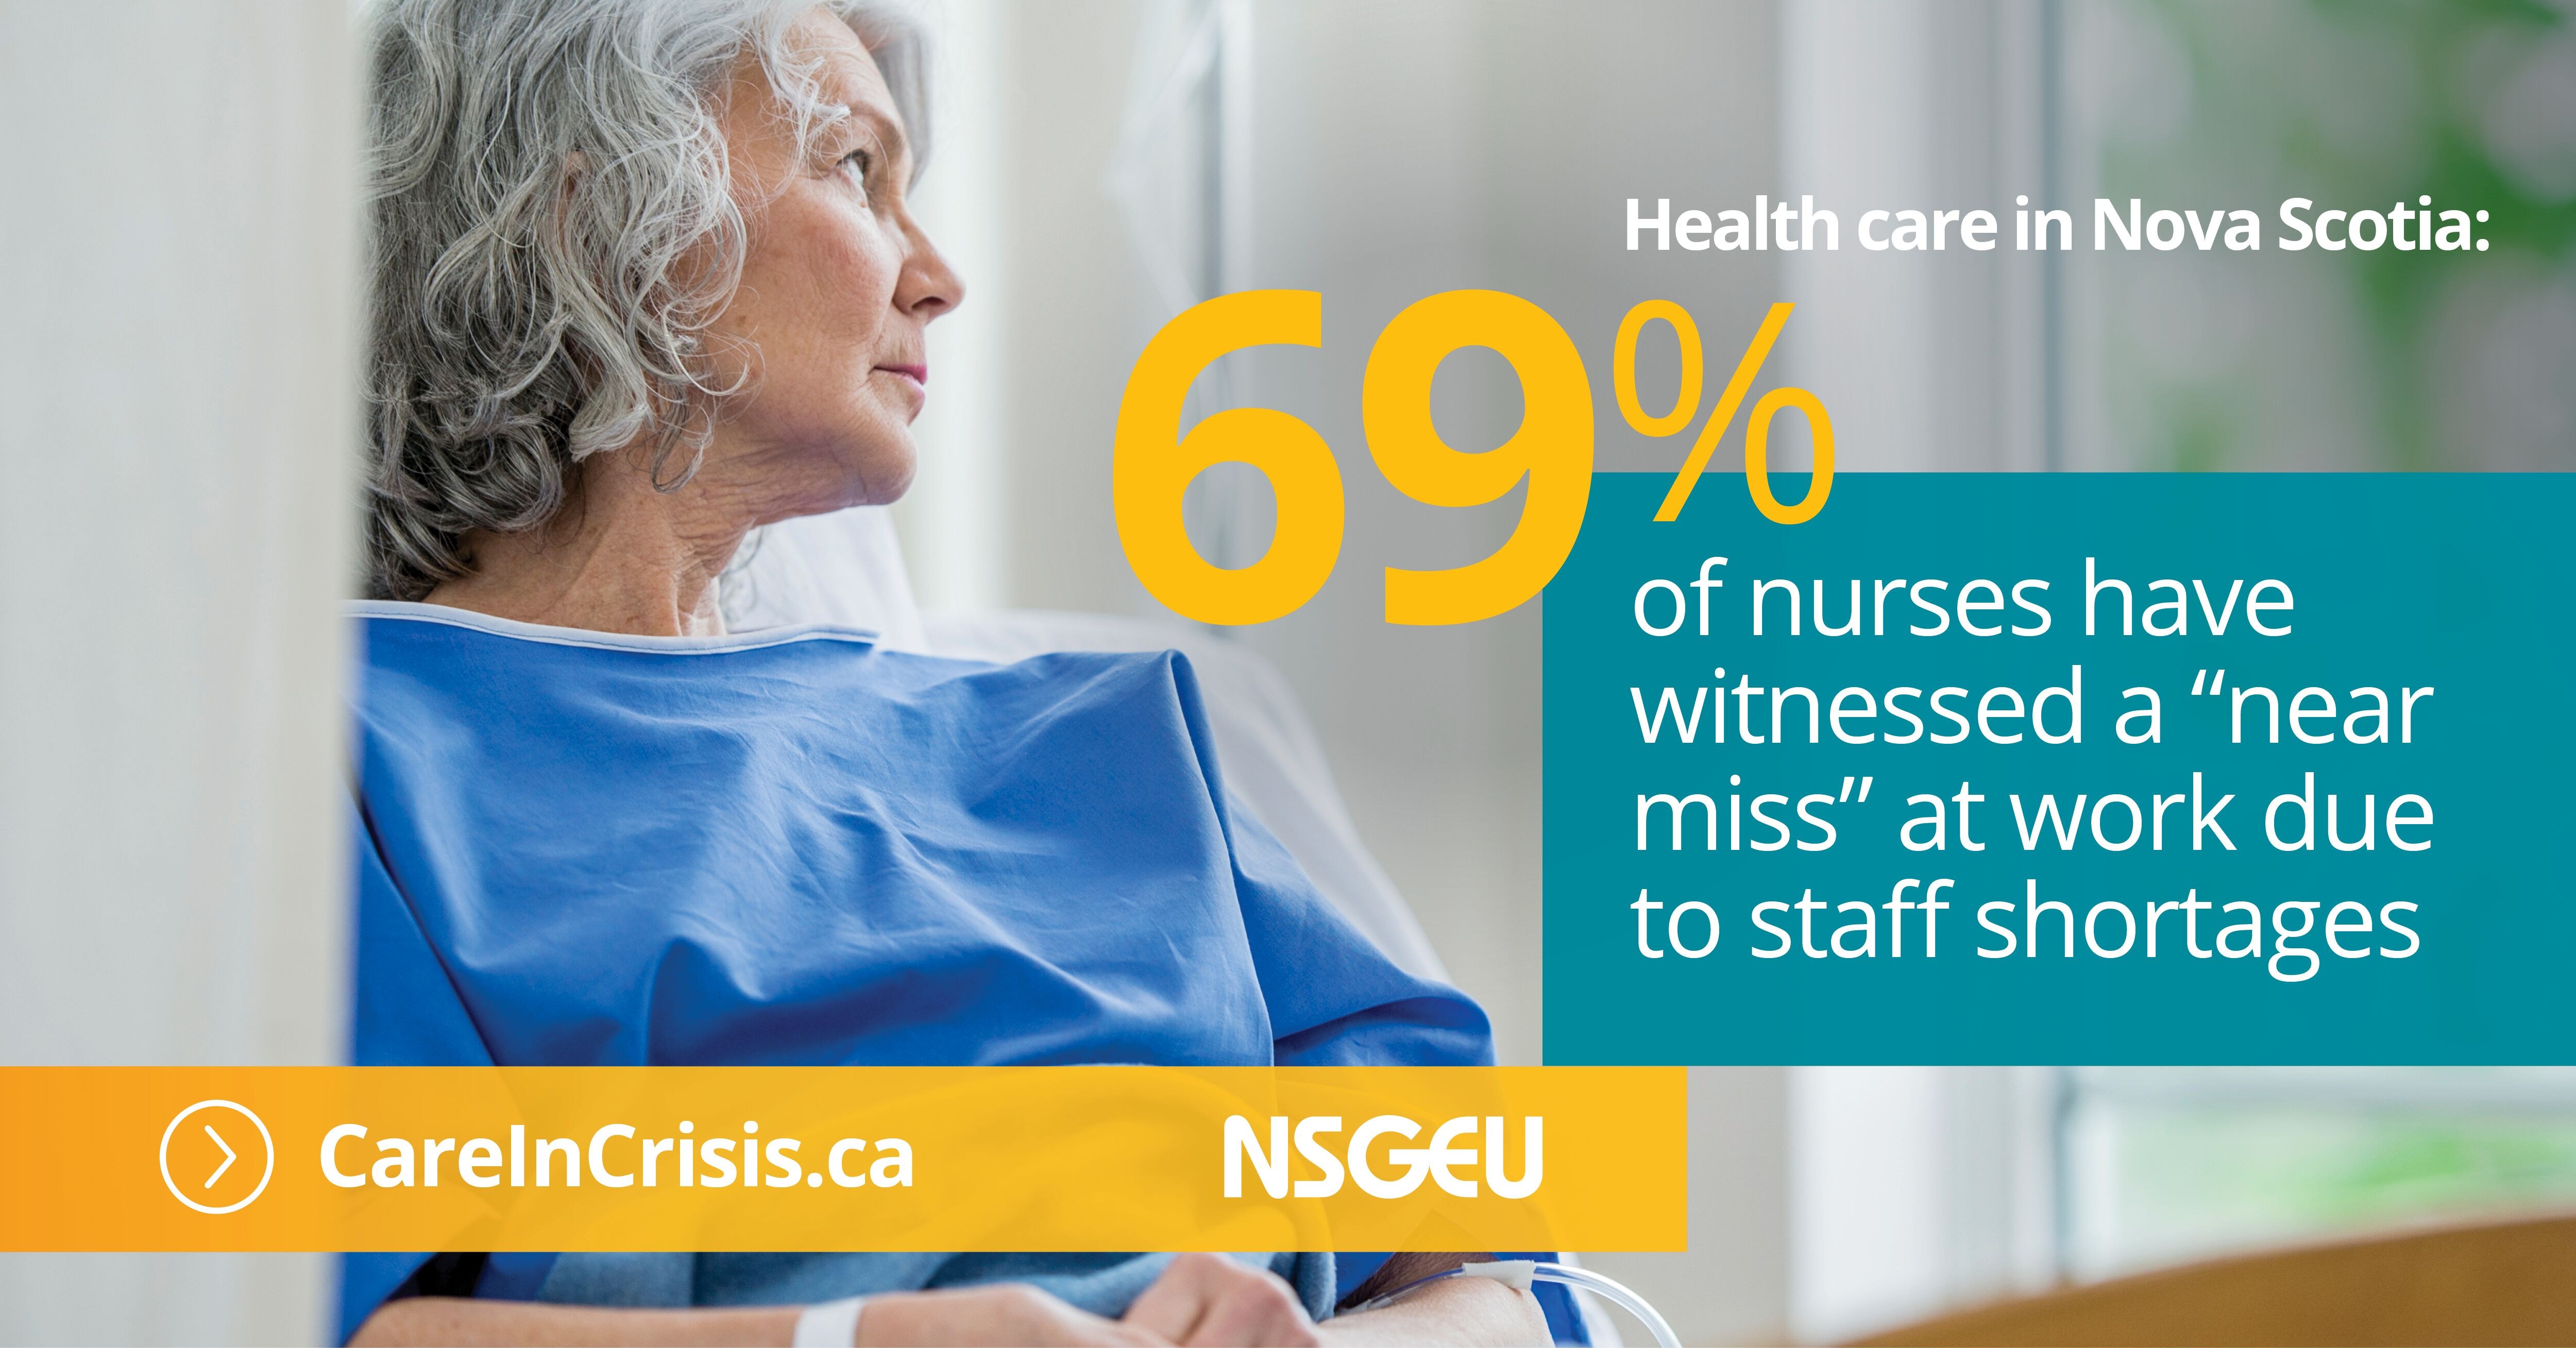 69% of nurses have witnessed a